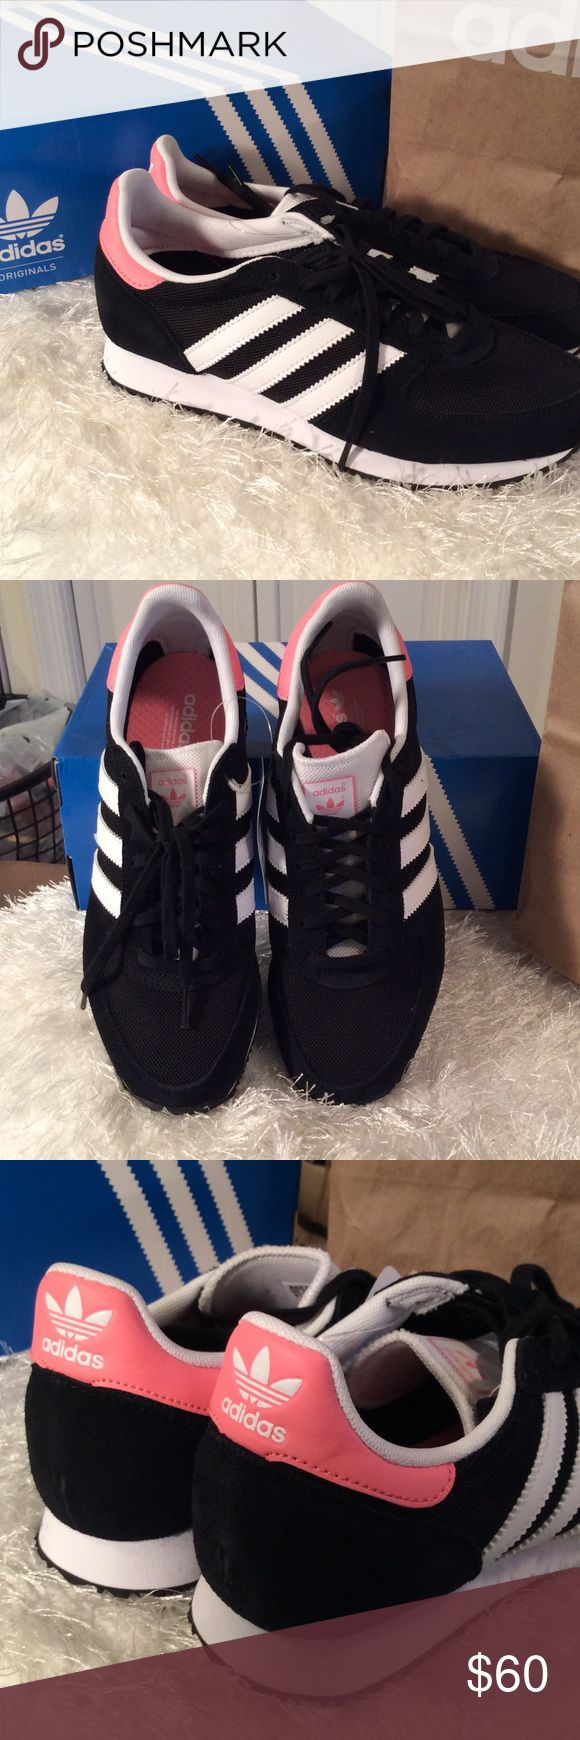 Adidas ZX racer Brand new in box Adidas Shoes Sneakers